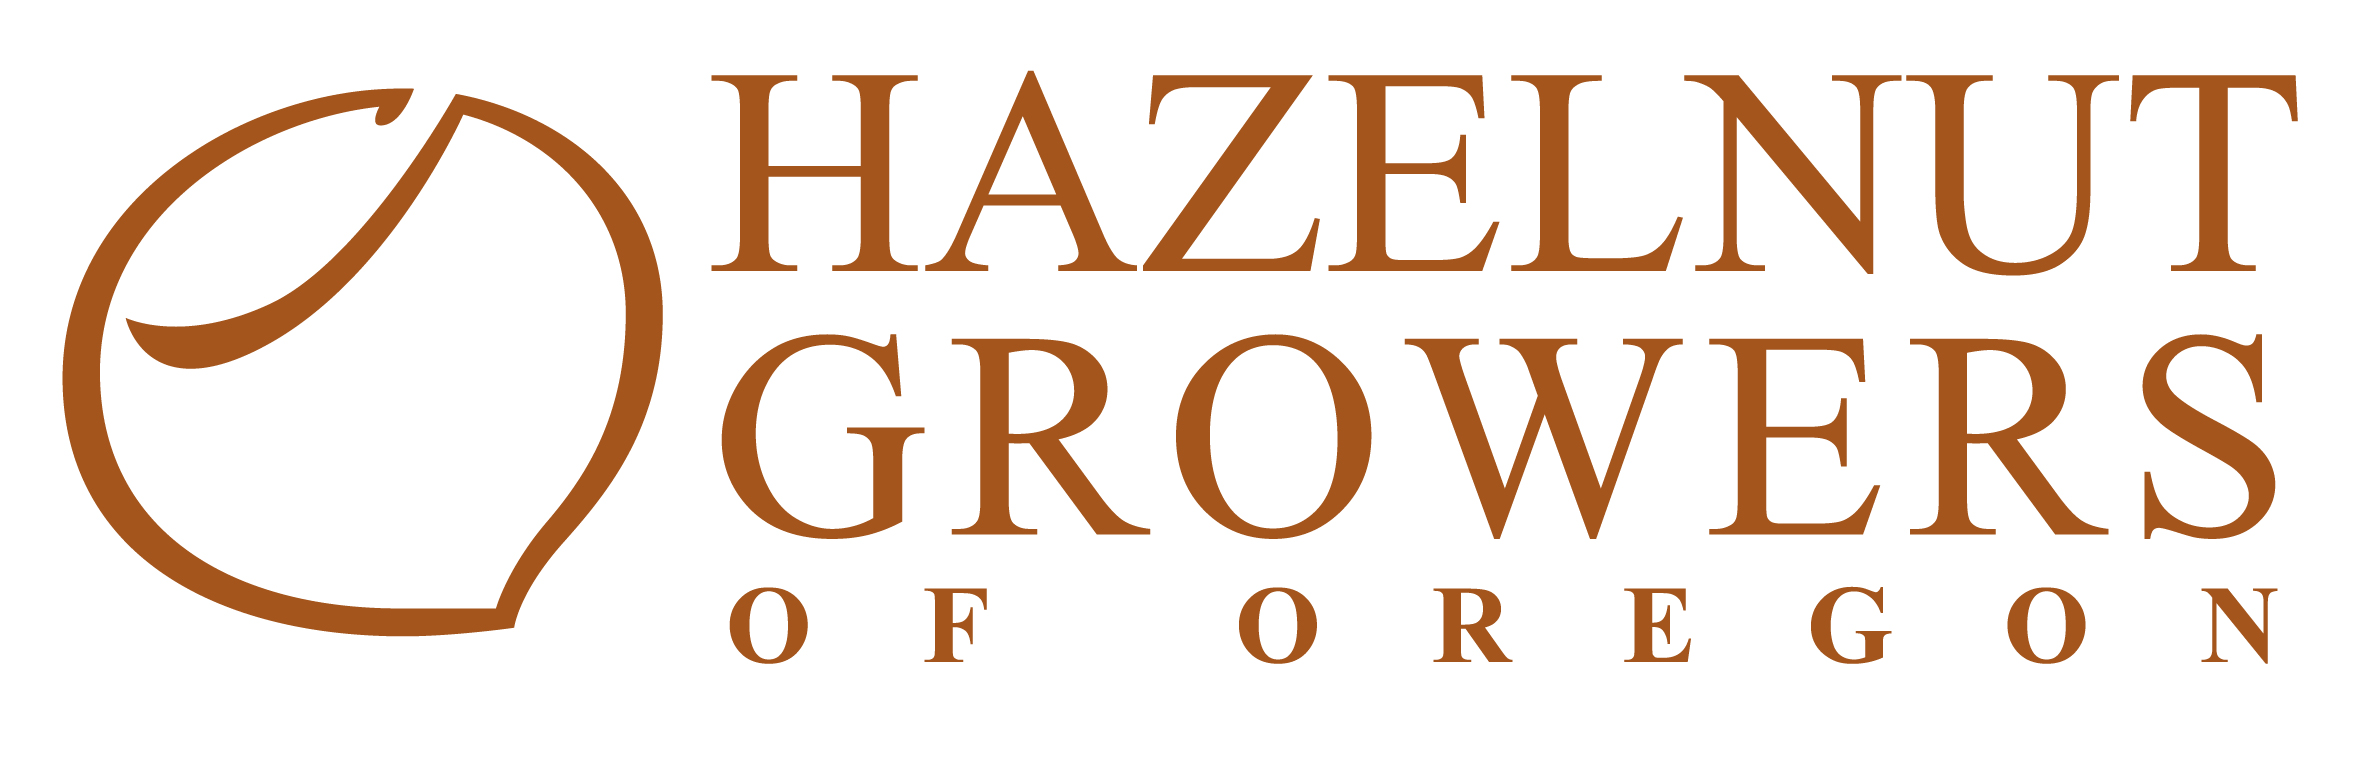 Hazelnut Growers of Oregon